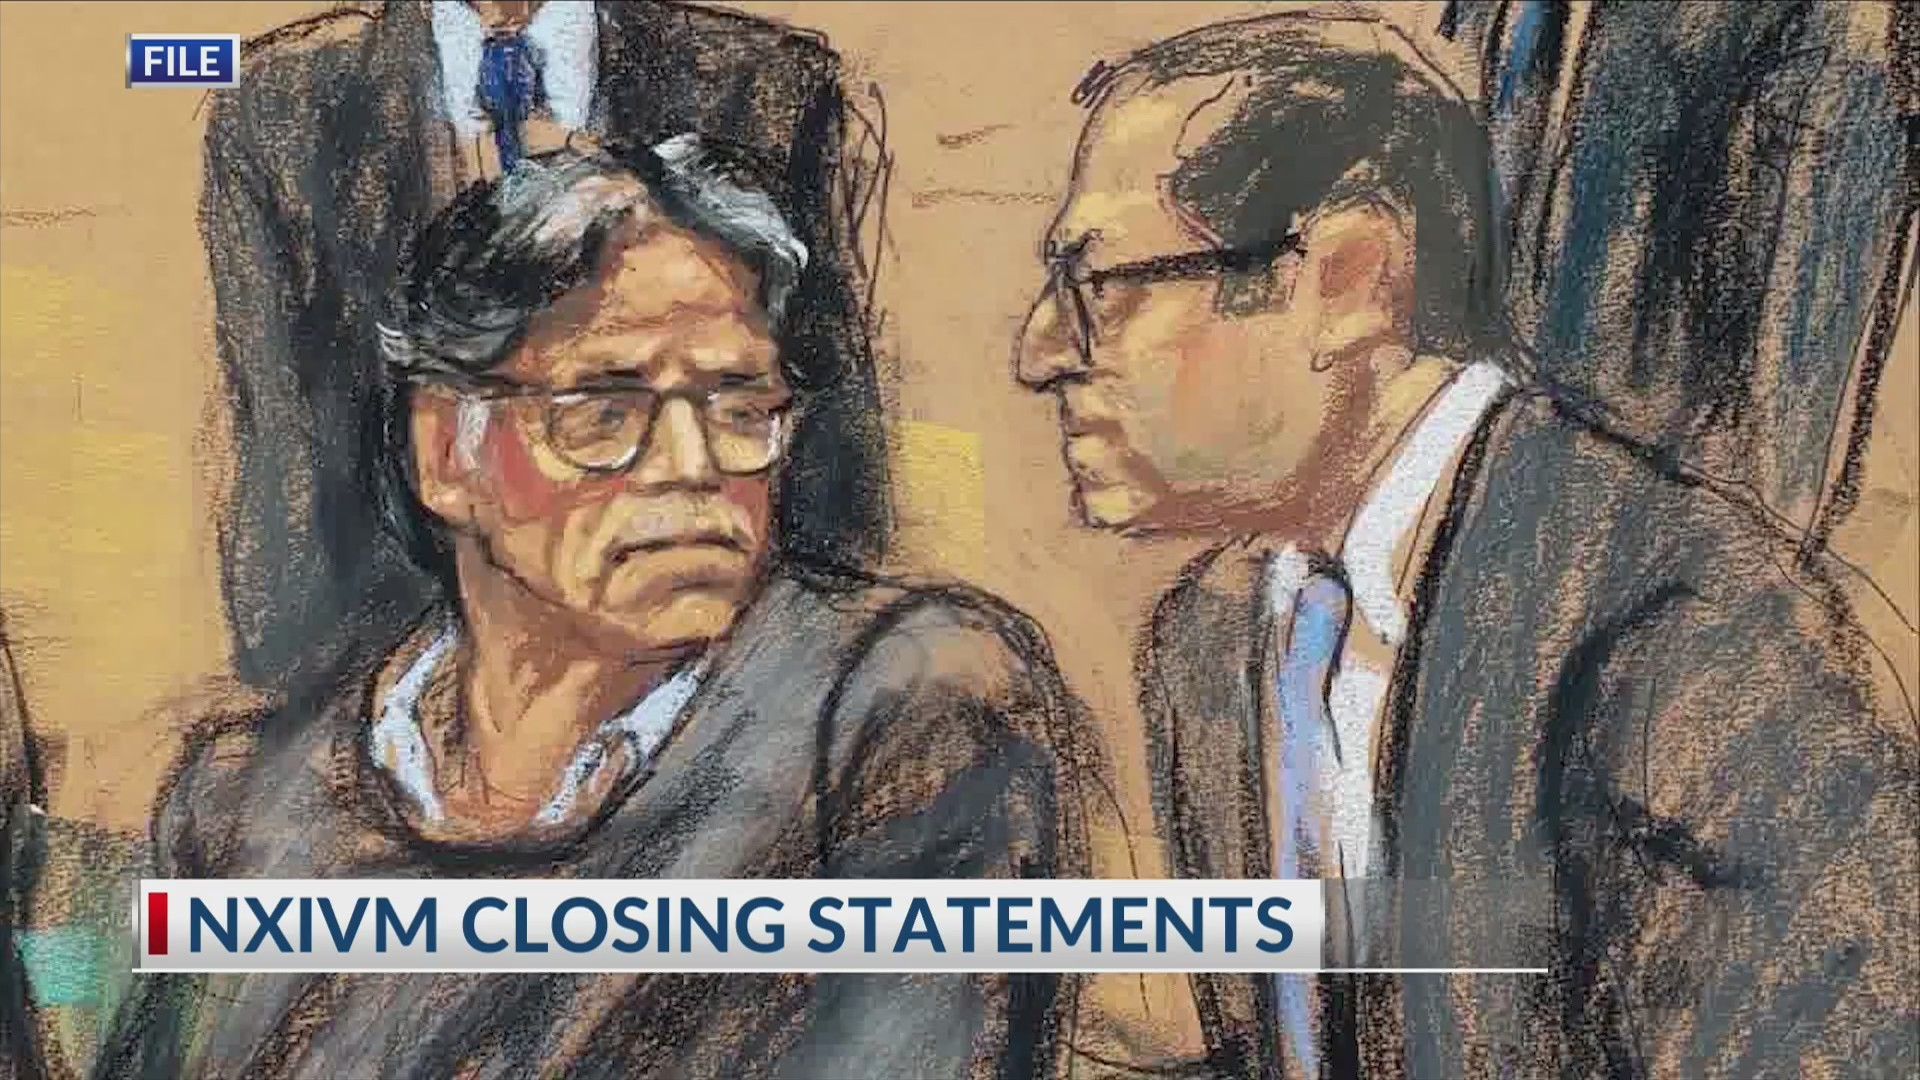 NXIVM Trial Closing Statements